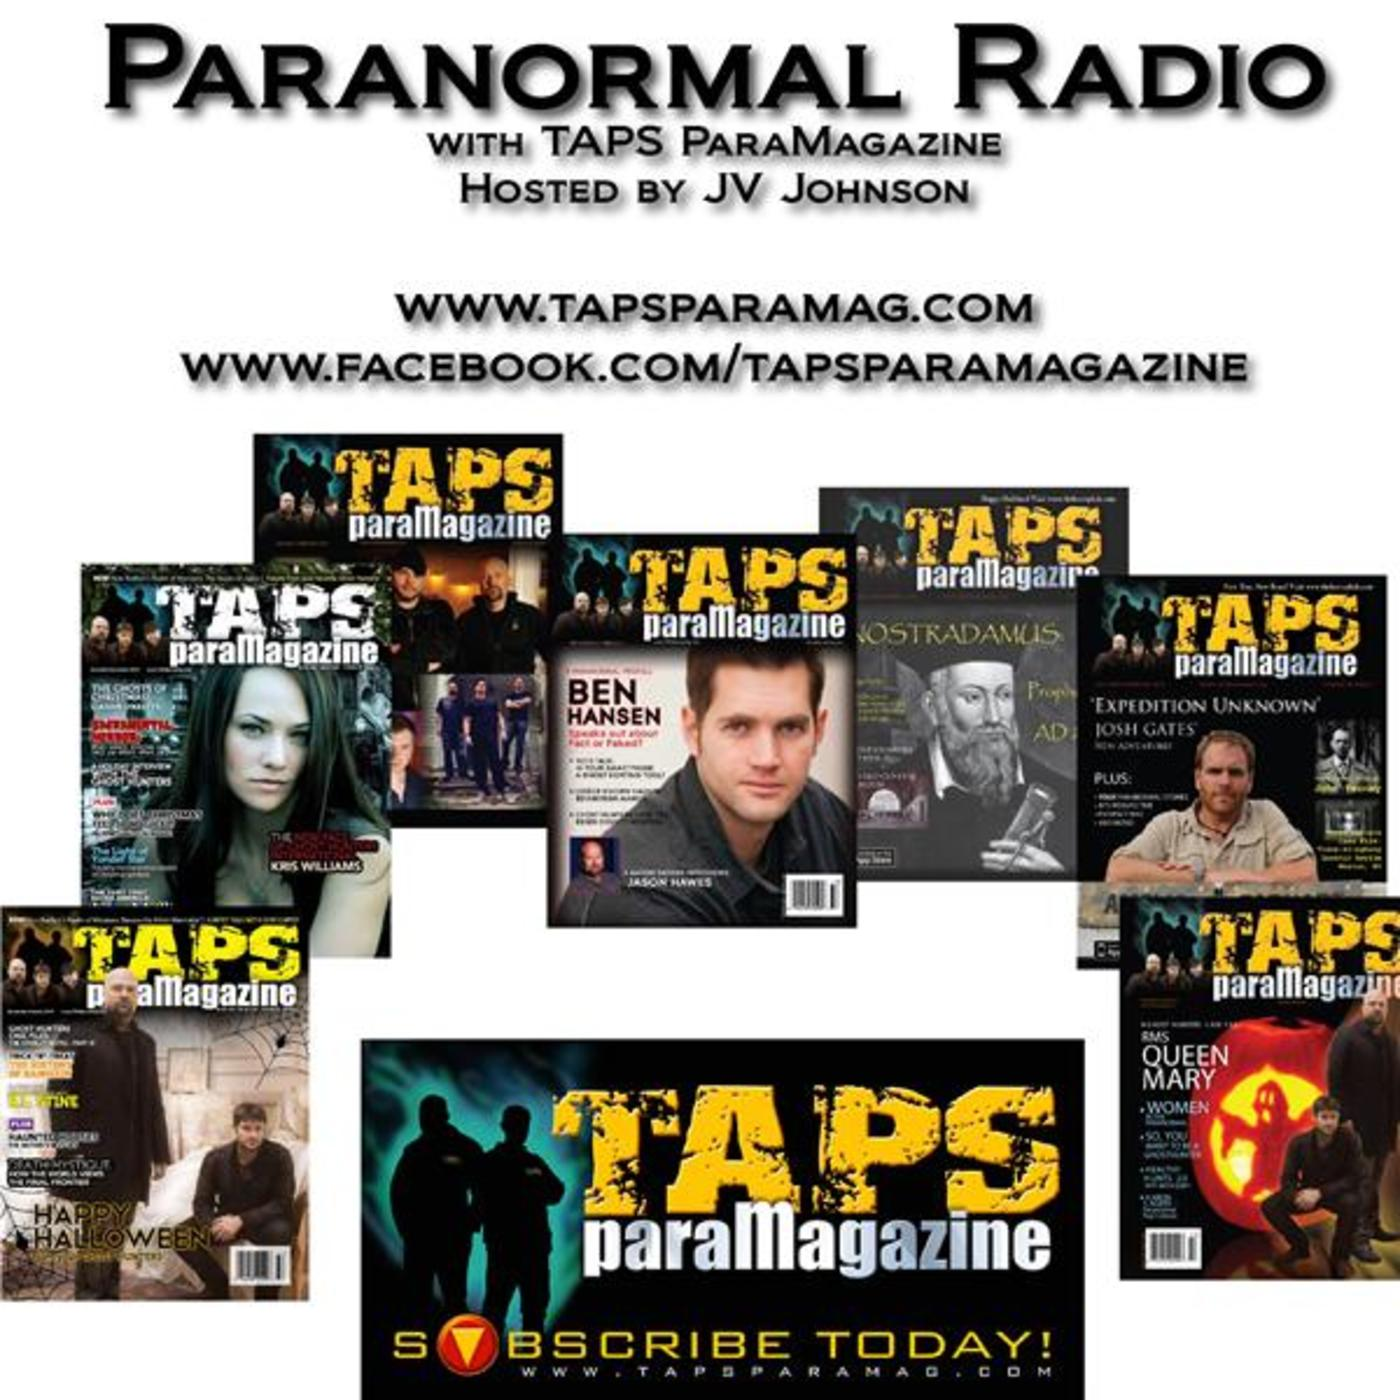 Paranormal Radio with TAPS ParaMagazine